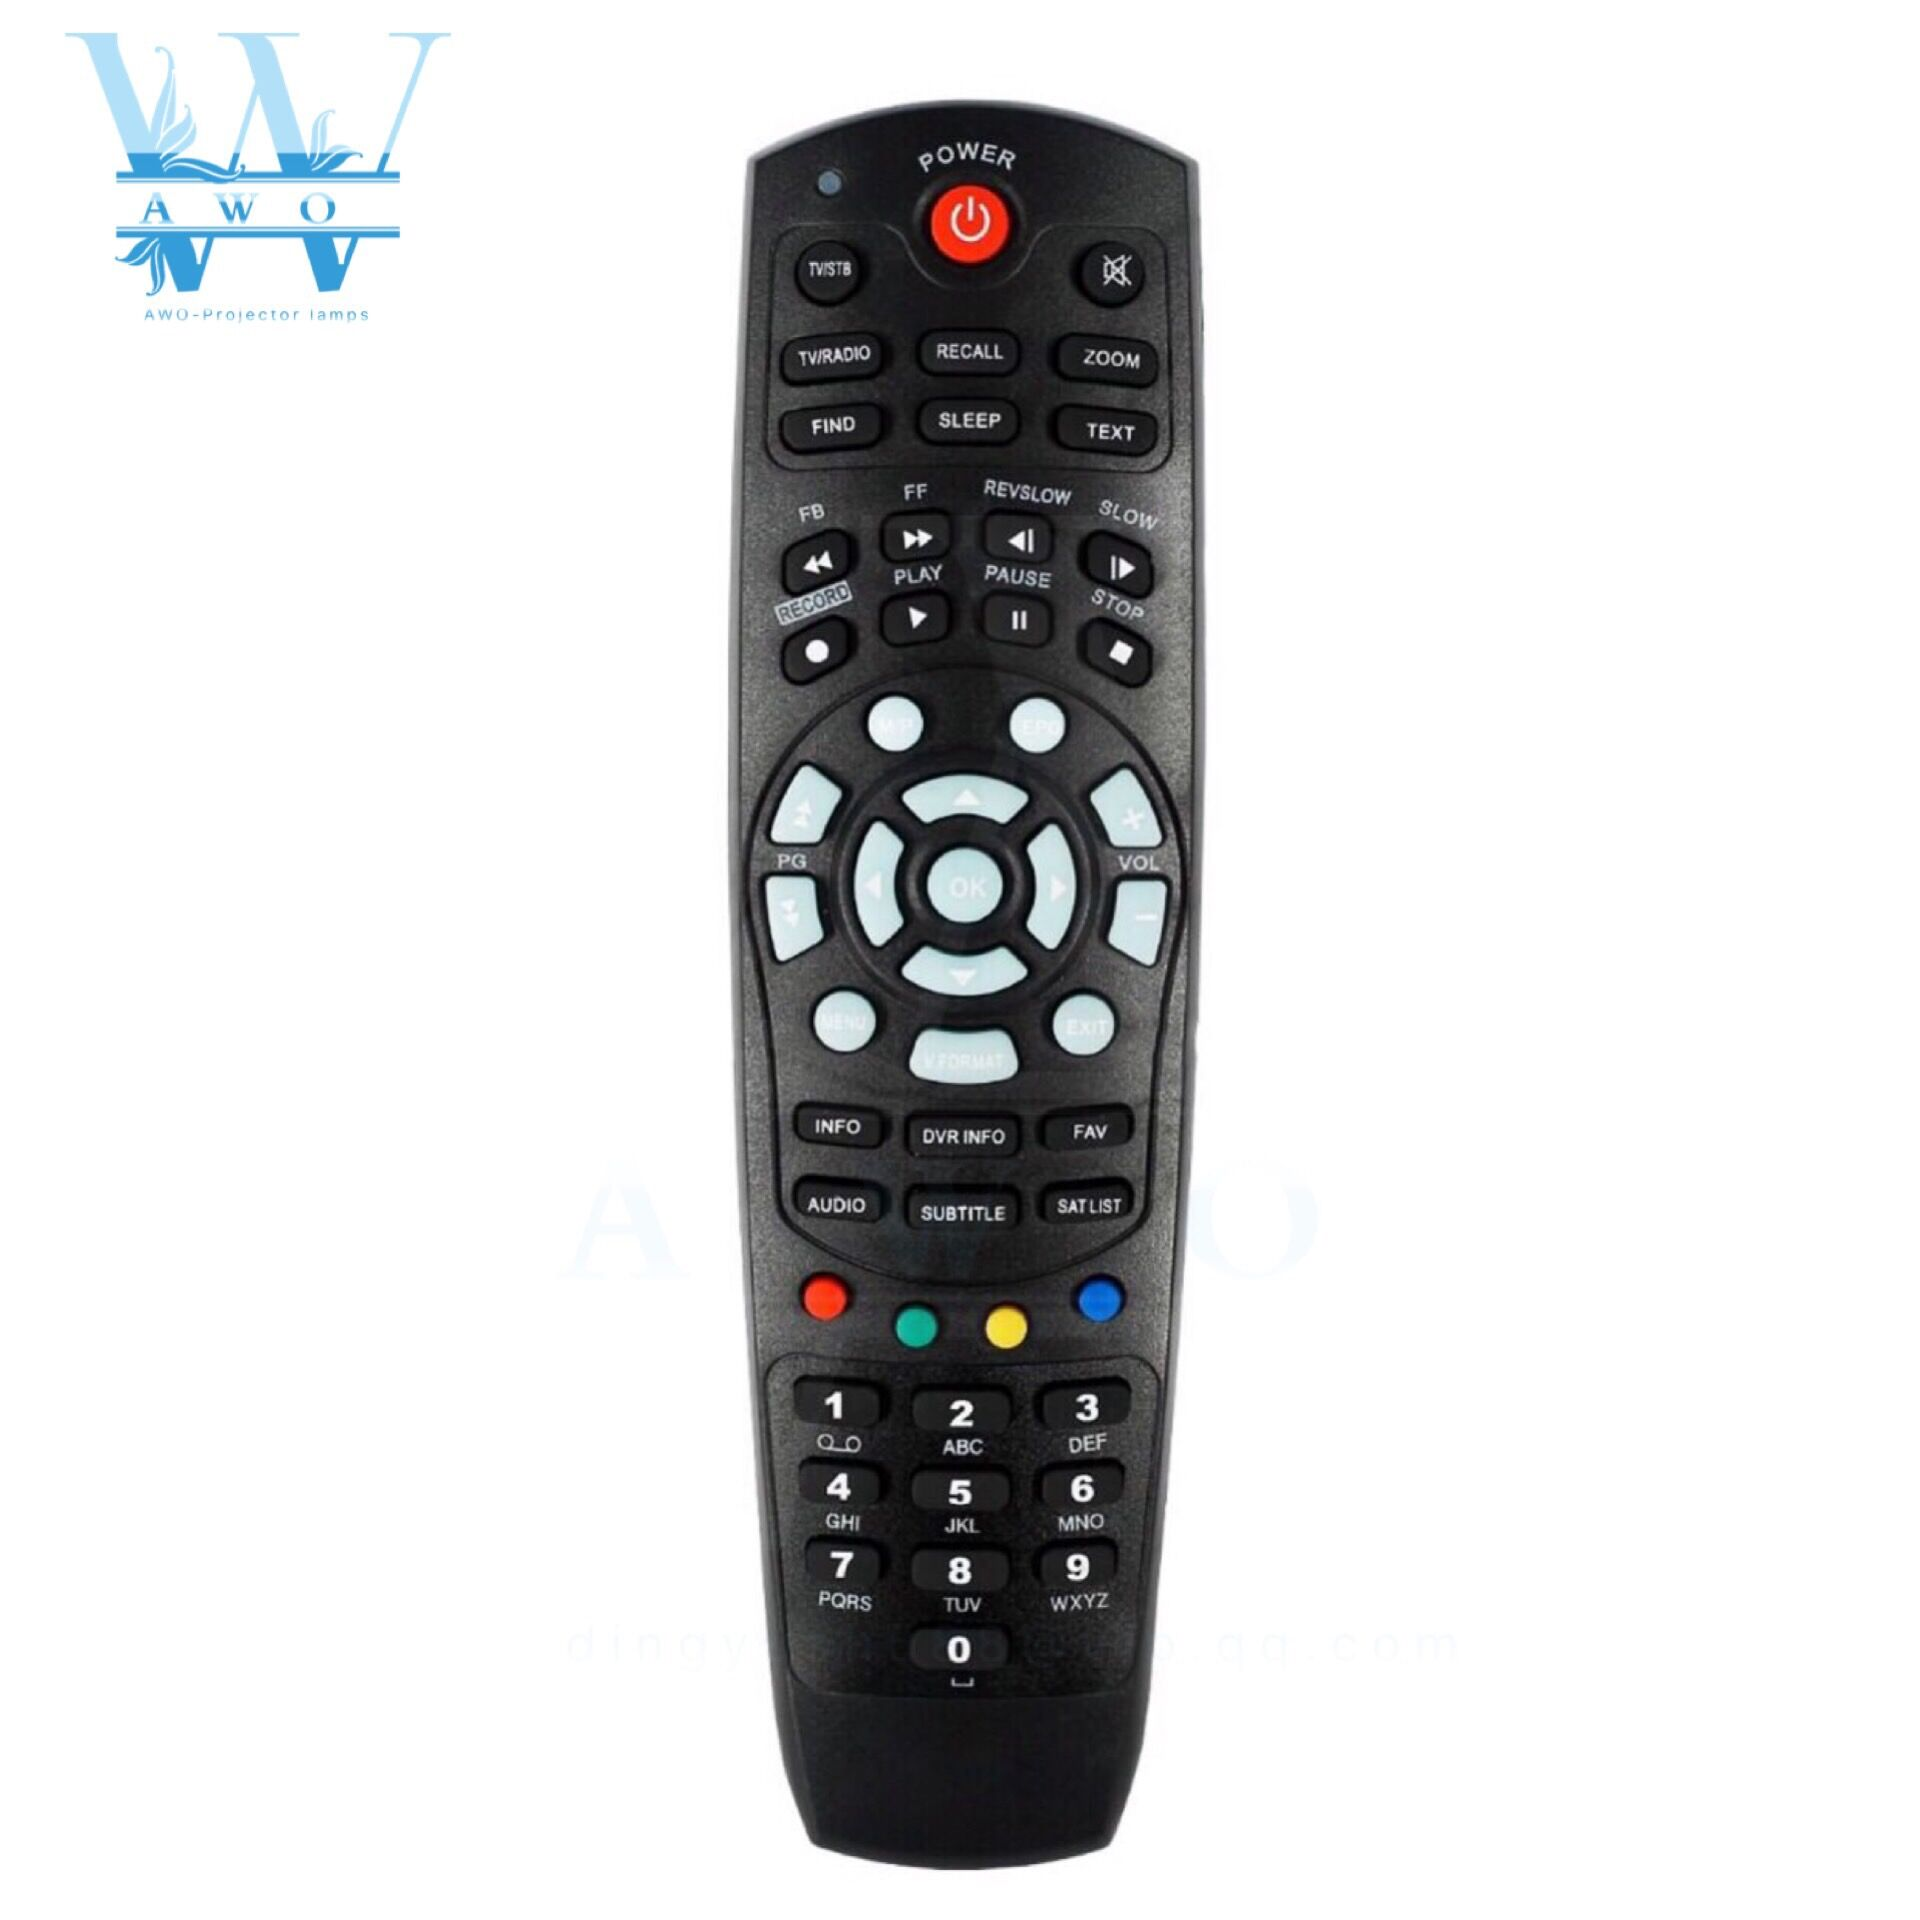 remote control suitable for open box openbox hi box OPENBOX S9 S16 HIBOX F1F2 HD800S2 HD500V8 S9 S10 S11 S12 Skybox F3S F4S F5S image